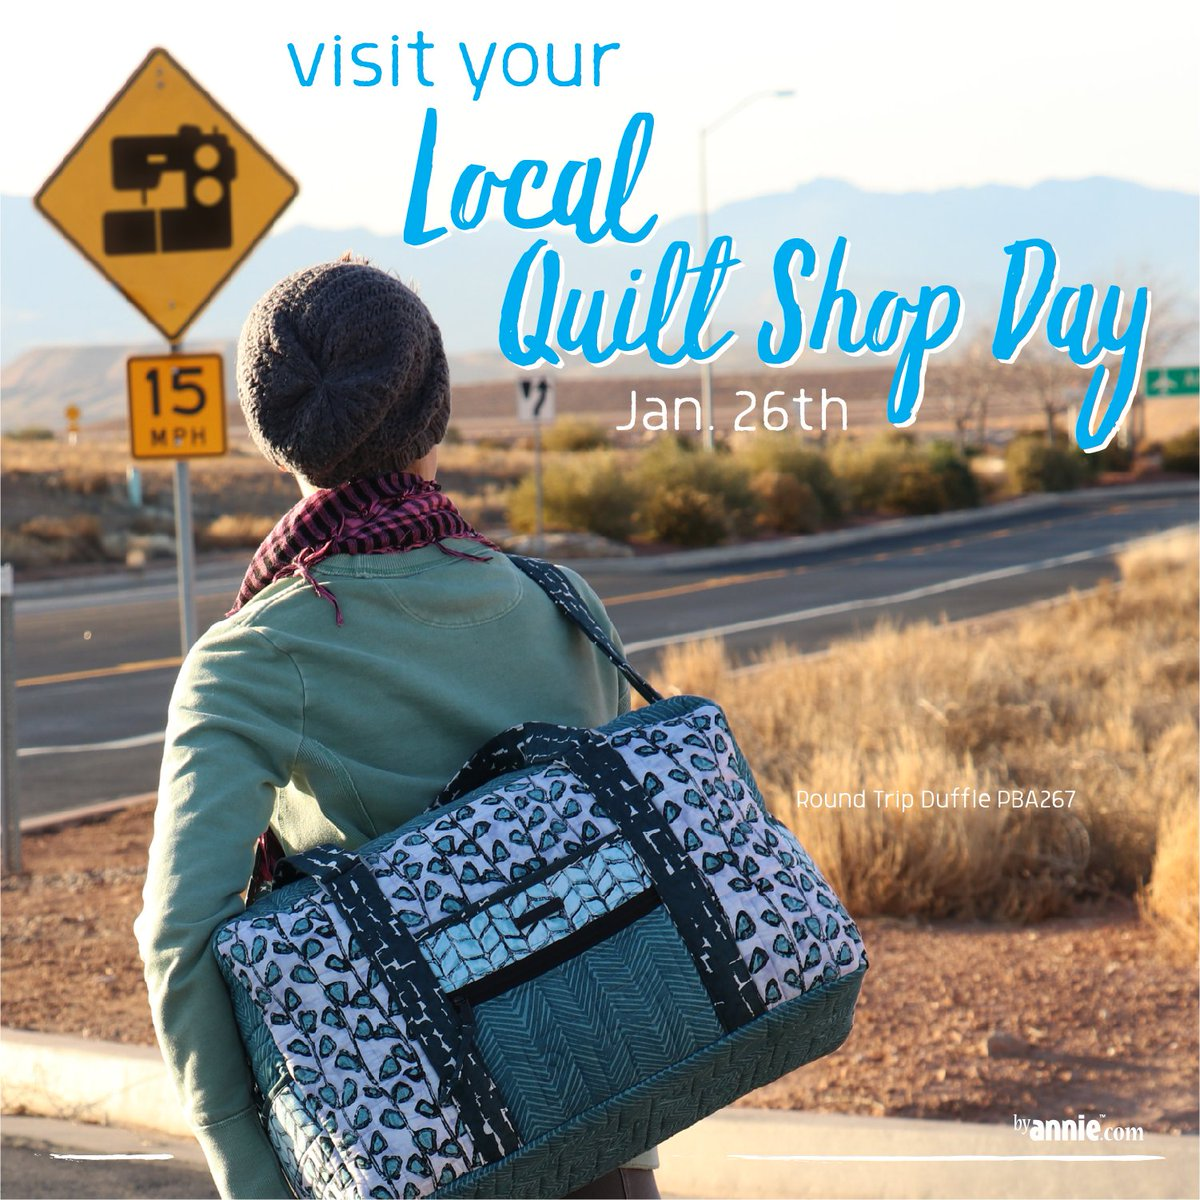 Local Quilt Shop Day: Vote for your local quilt shop to win! - https://mailchi.mp/899ba797b28a/local-quilt-shop-day-trunk-show-contest-2019…